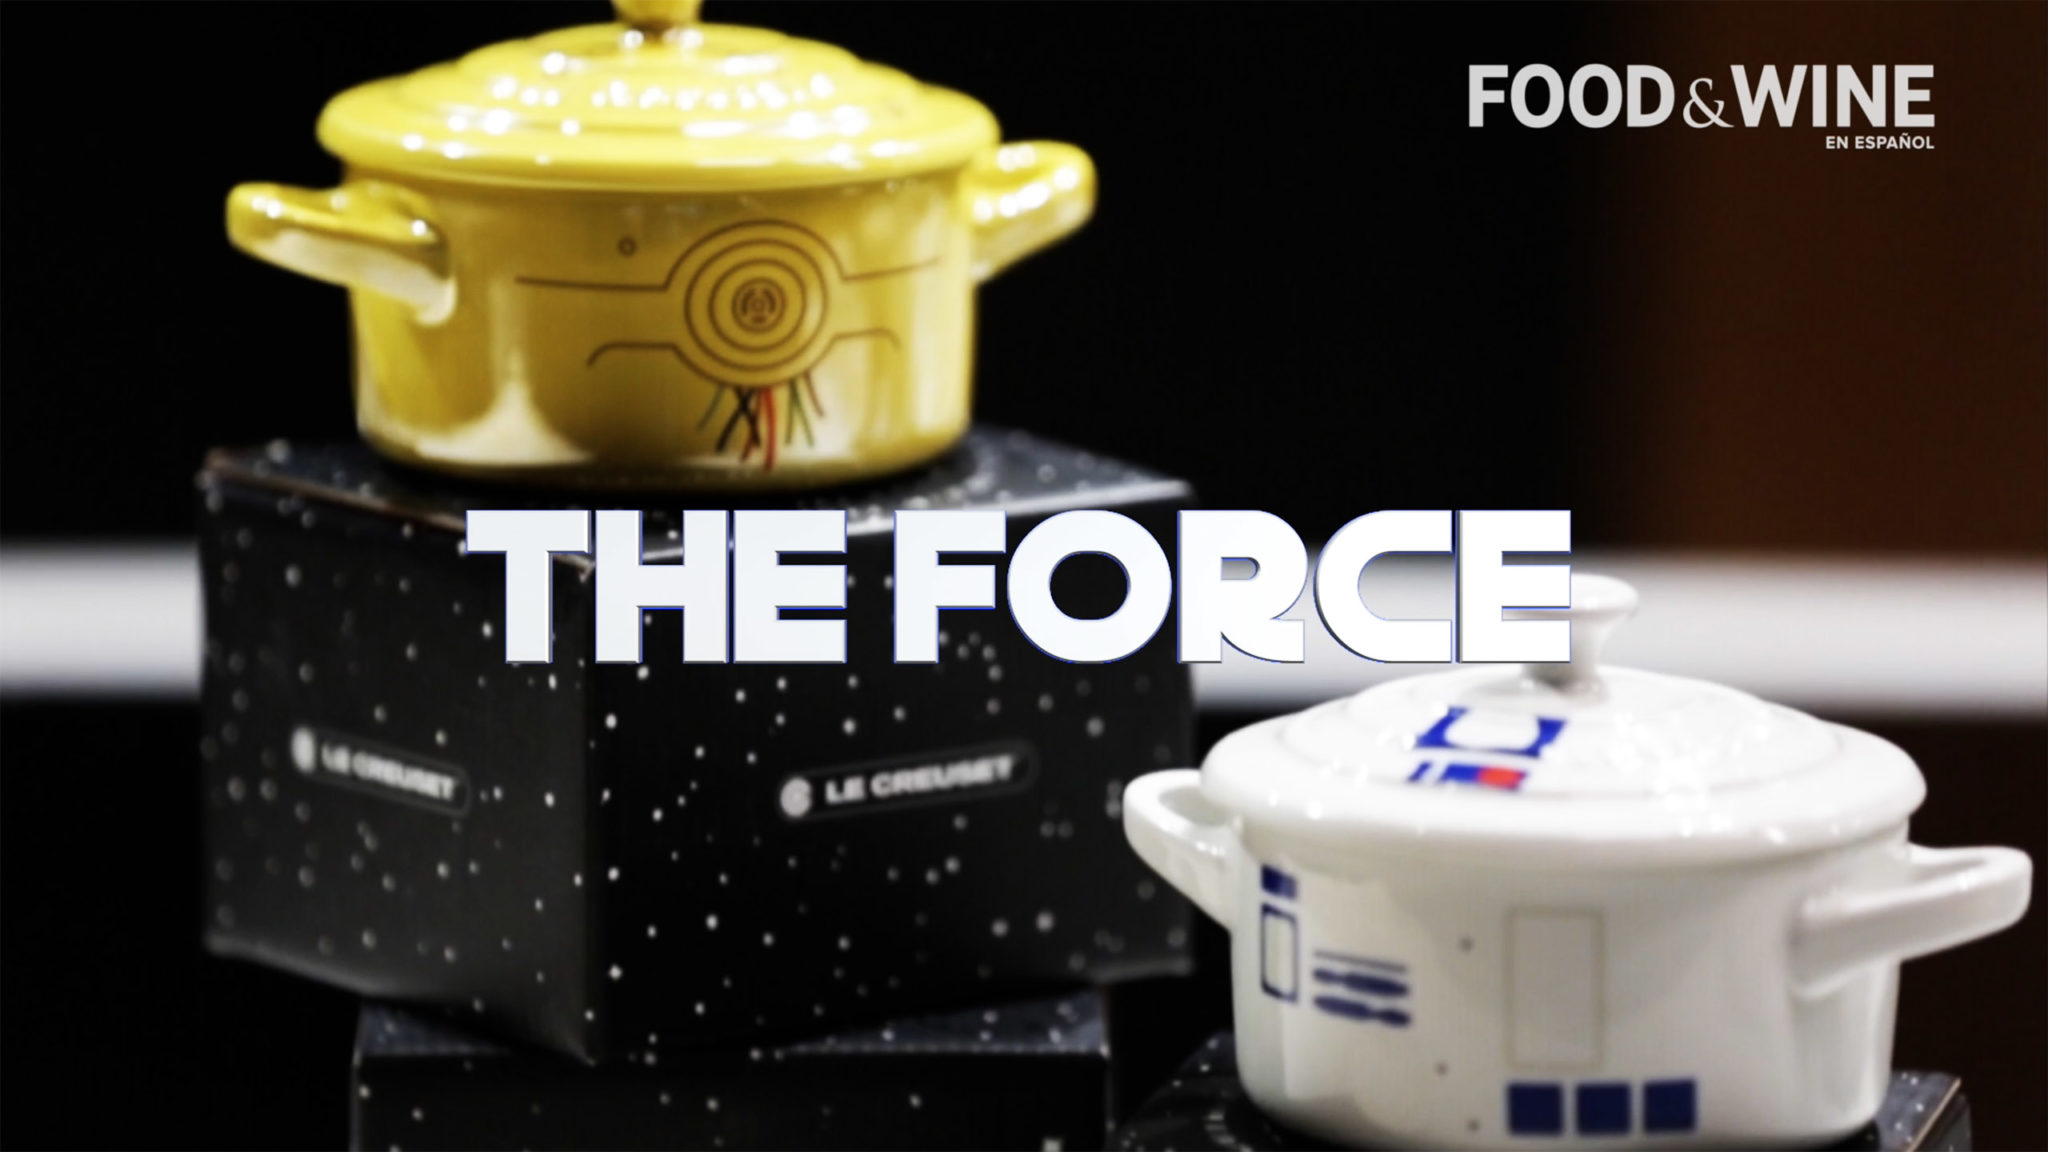 Star Wars, Le Creuset